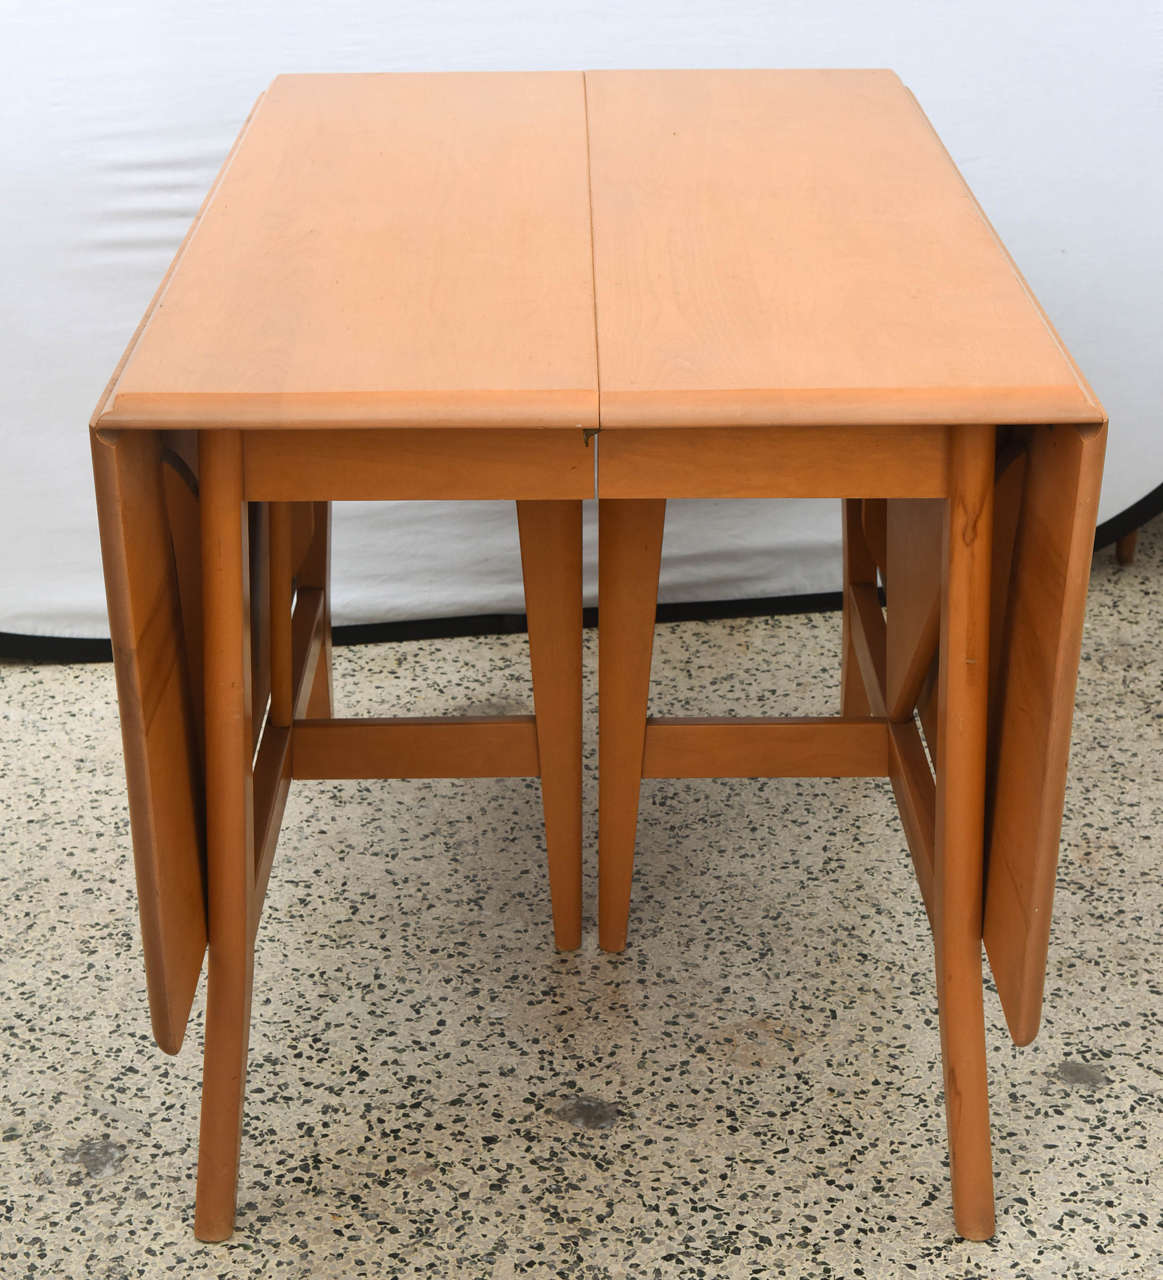 Fine Maple Heywood Wakefield Drop Leaf Dining Table 1950S Saturday Sale Interior Design Ideas Philsoteloinfo